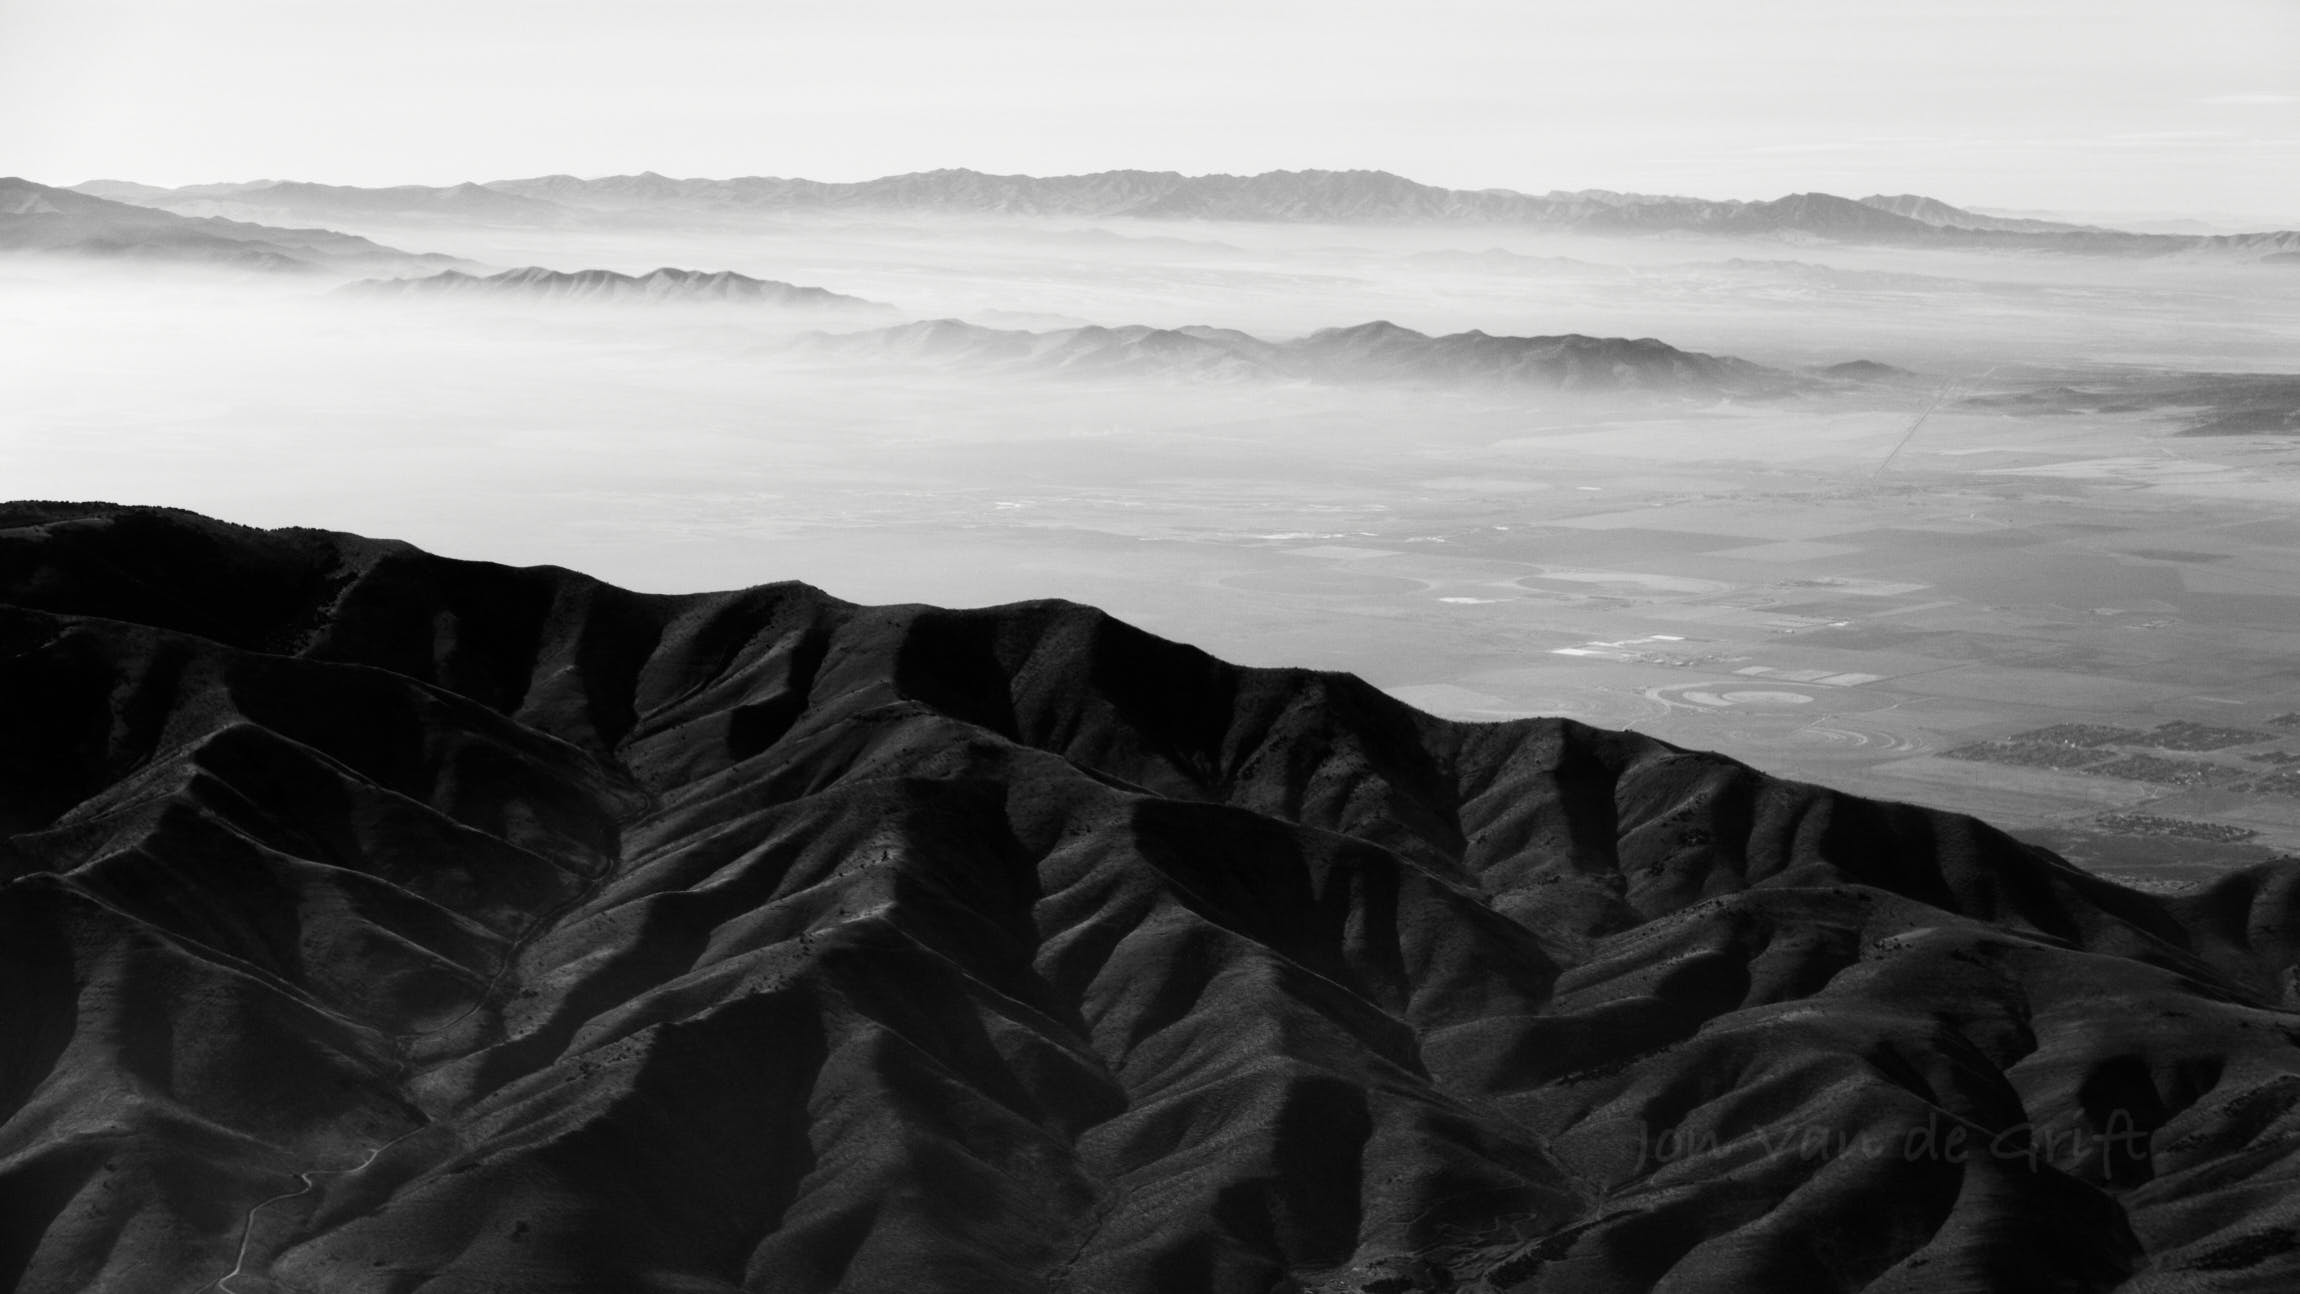 Black and white aerial photograph of dry mountains and valleys.